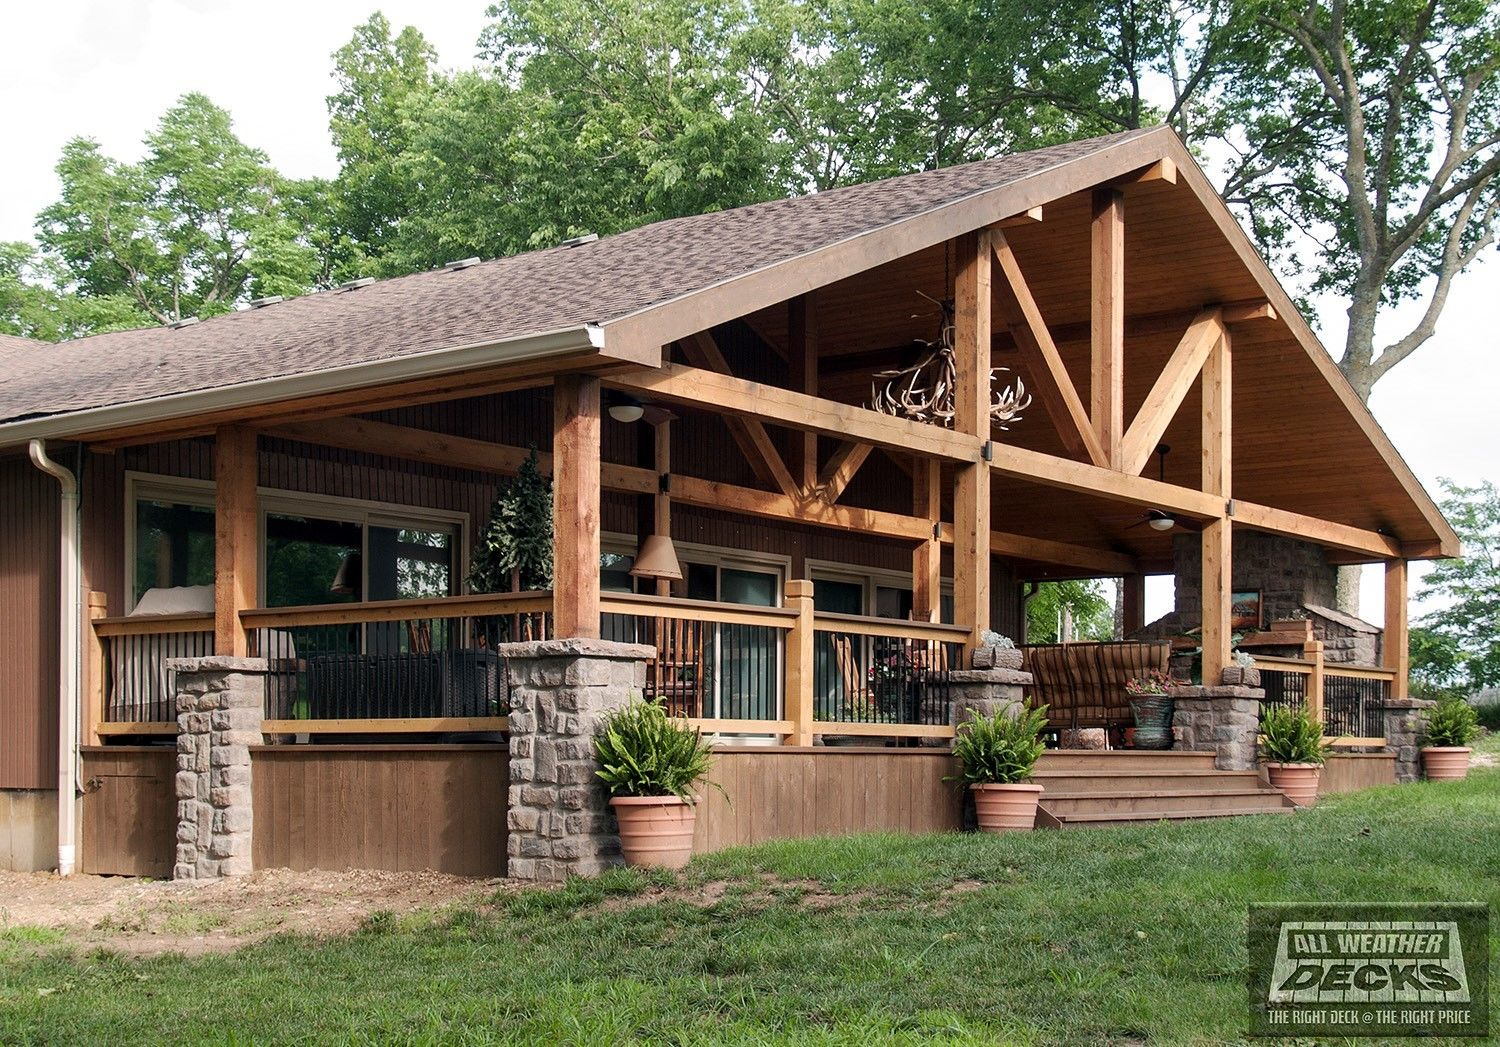 Burning Pressure Treated Wood In Fireplace Image Fireplace And Gabled Roof Covered Deck - Picture 7676 | Decks.com